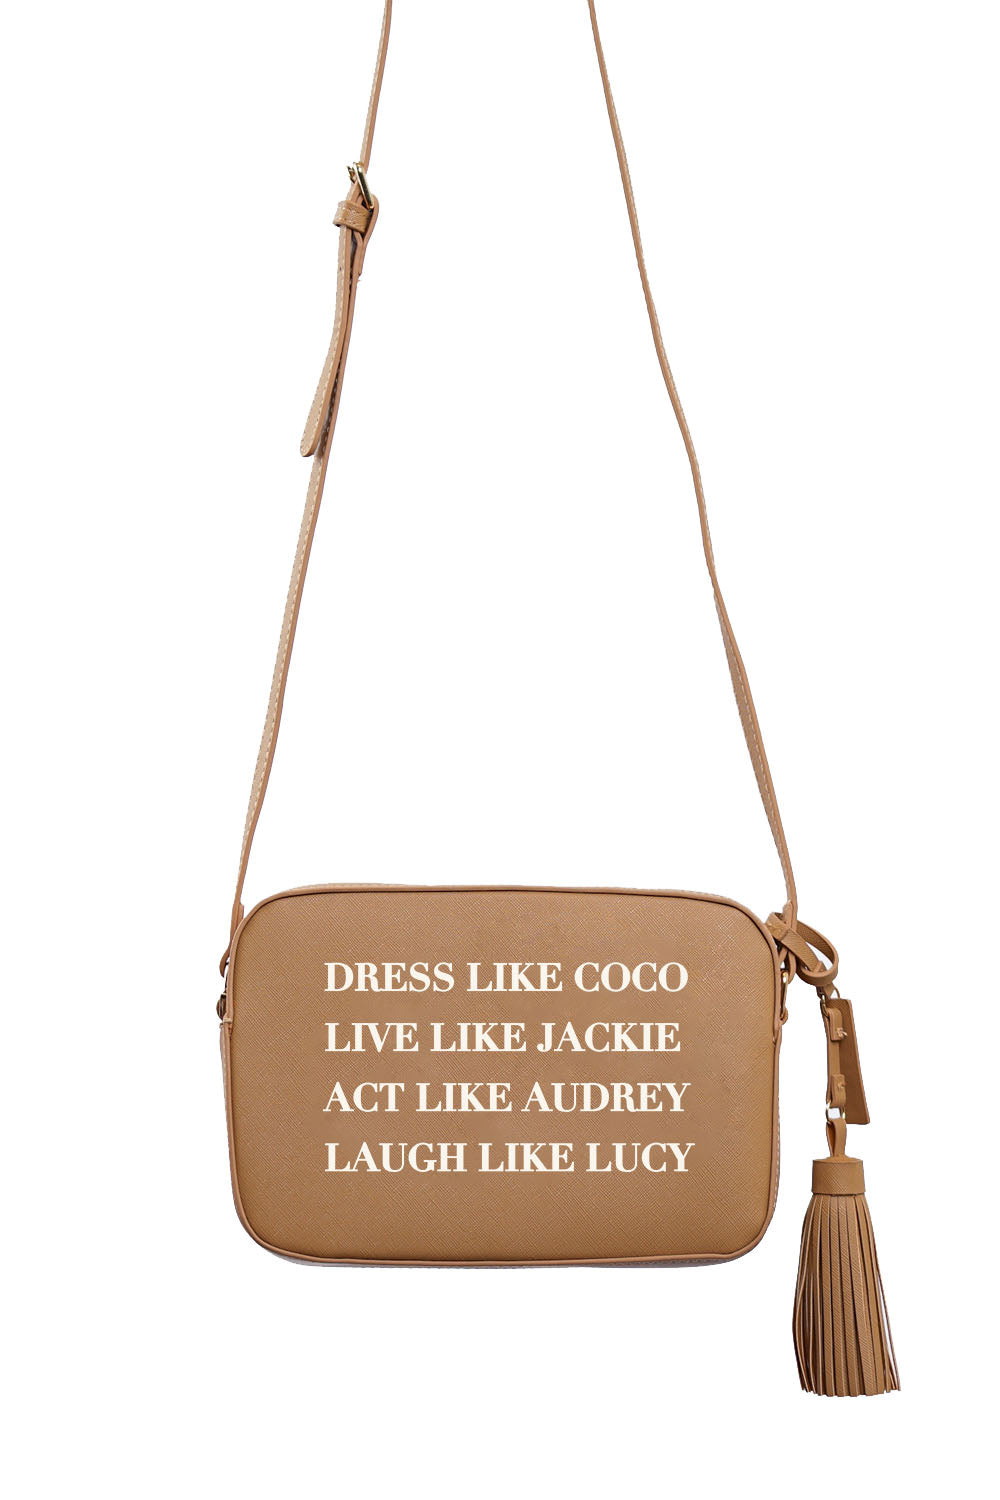 VEGAN CROSSBODY BAG - Dress Like Coco (Tan)